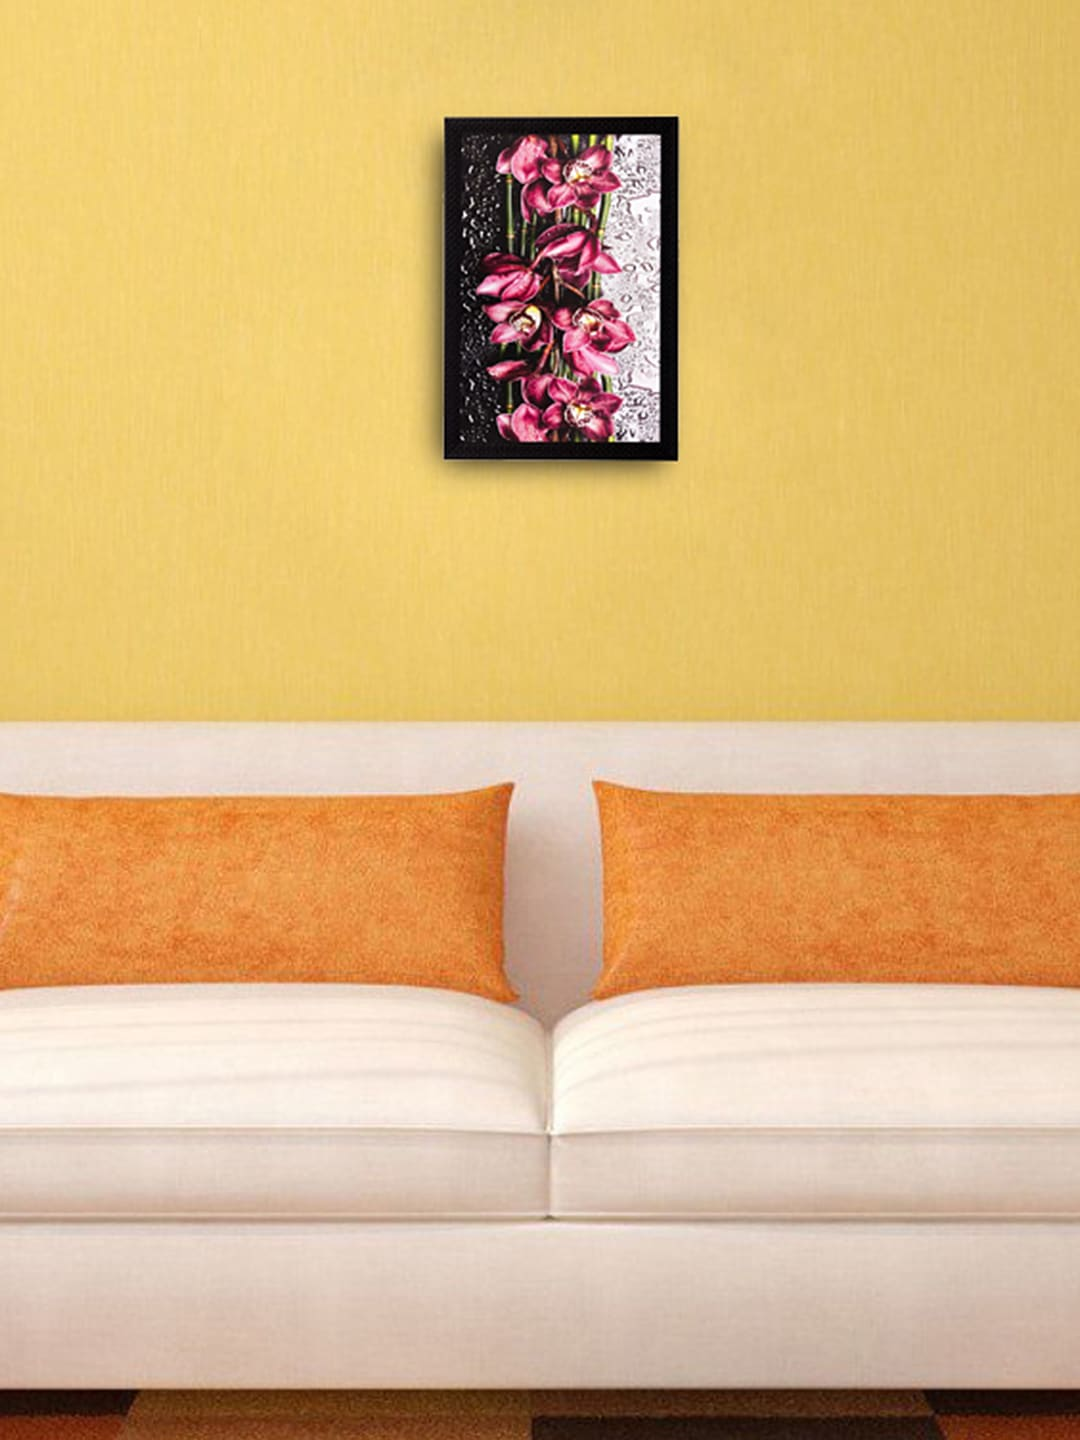 Ecraftindia Wall Art - Buy Ecraftindia Wall Art online in India